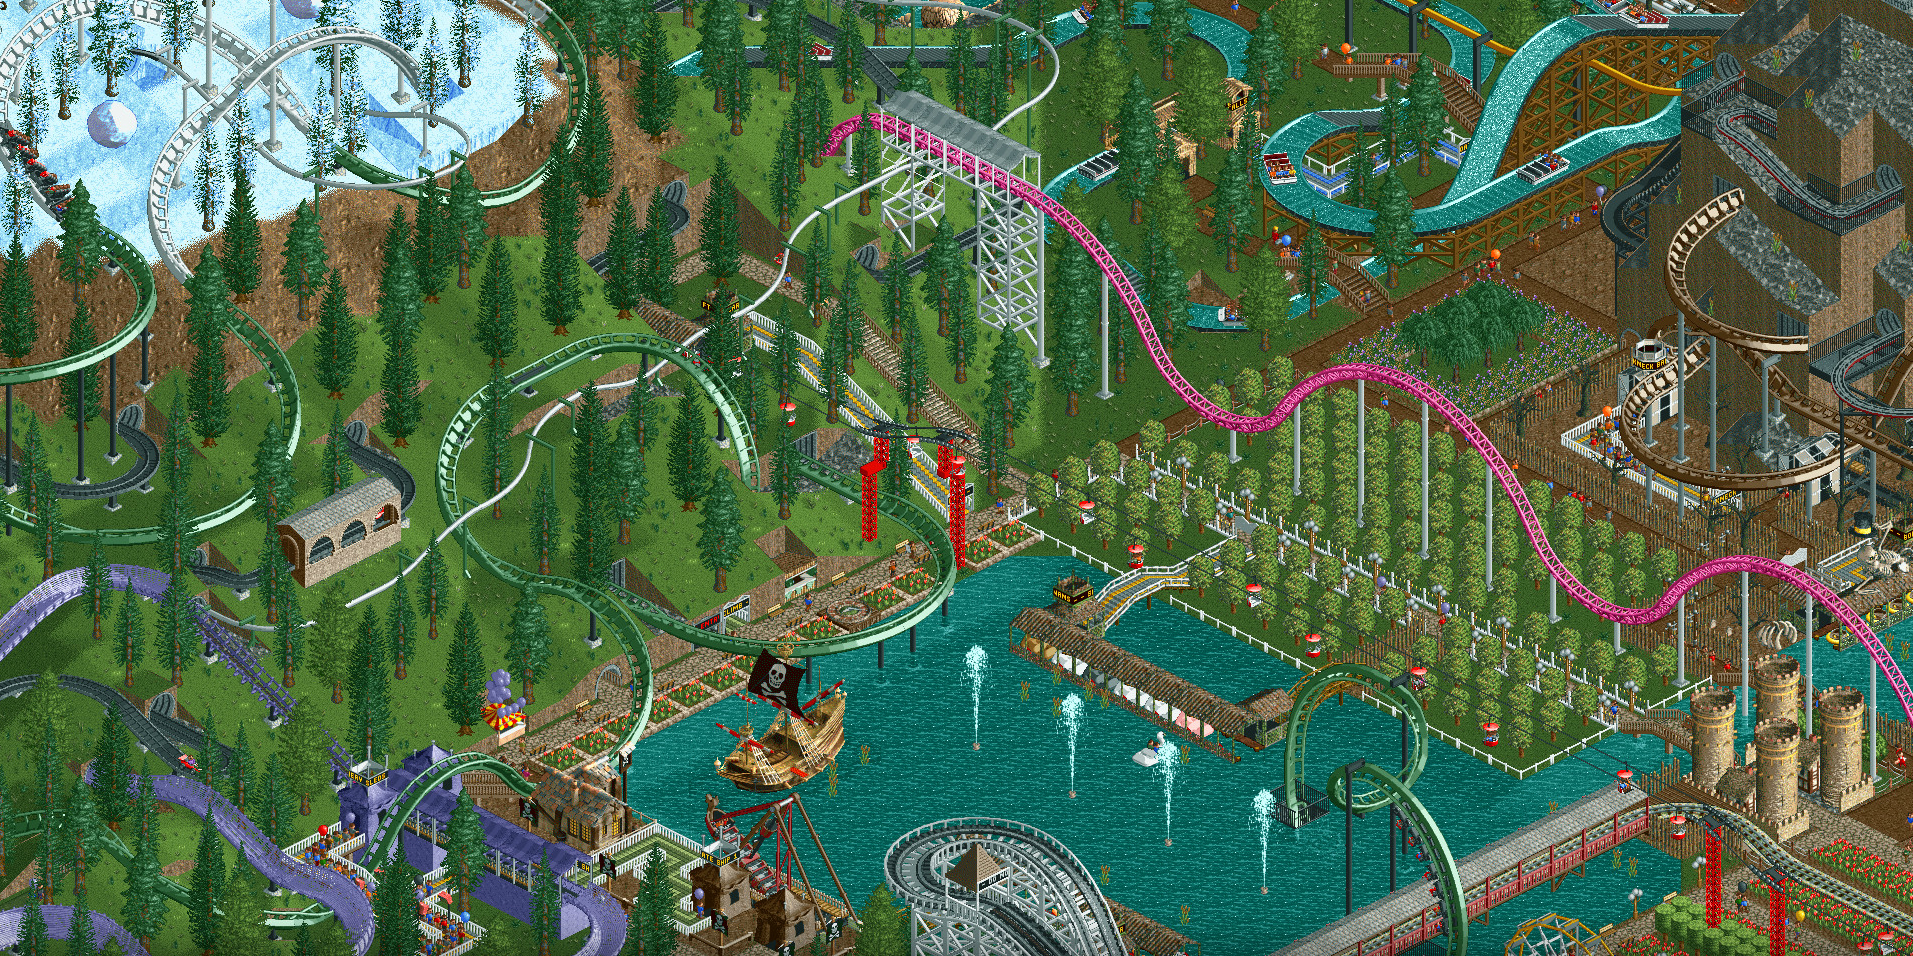 RollerCoaster Tycoon Classic rides onto Steam tomorrow   PC Gamer